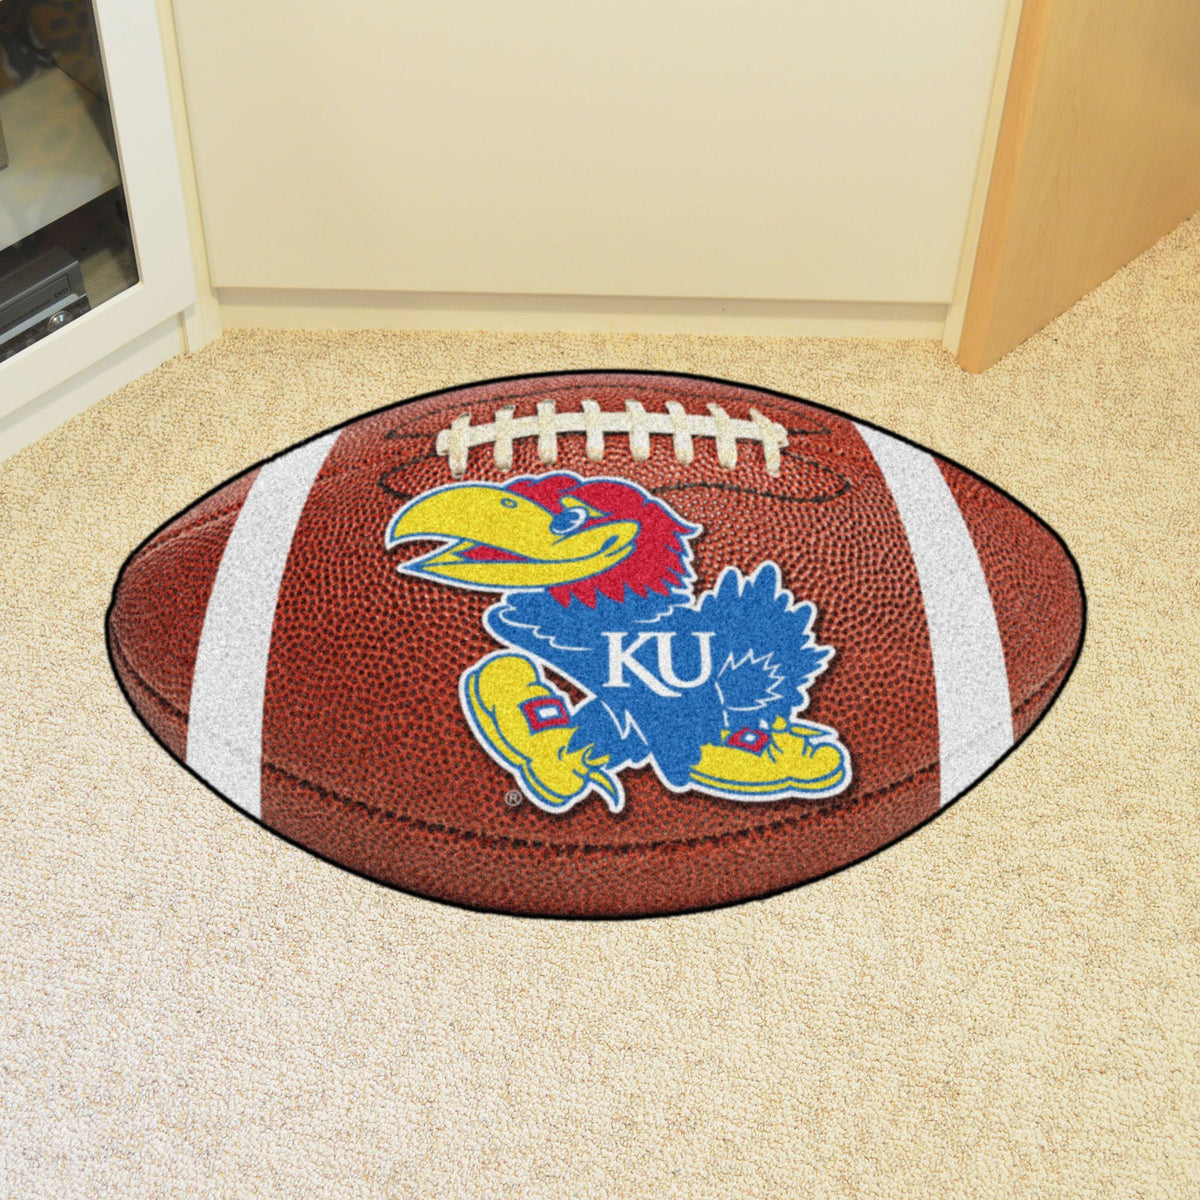 Collegiate - Football Mat: A - K Collegiate Mats, Rectangular Mats, Football Mat, Collegiate, Home Fan Mats Kansas